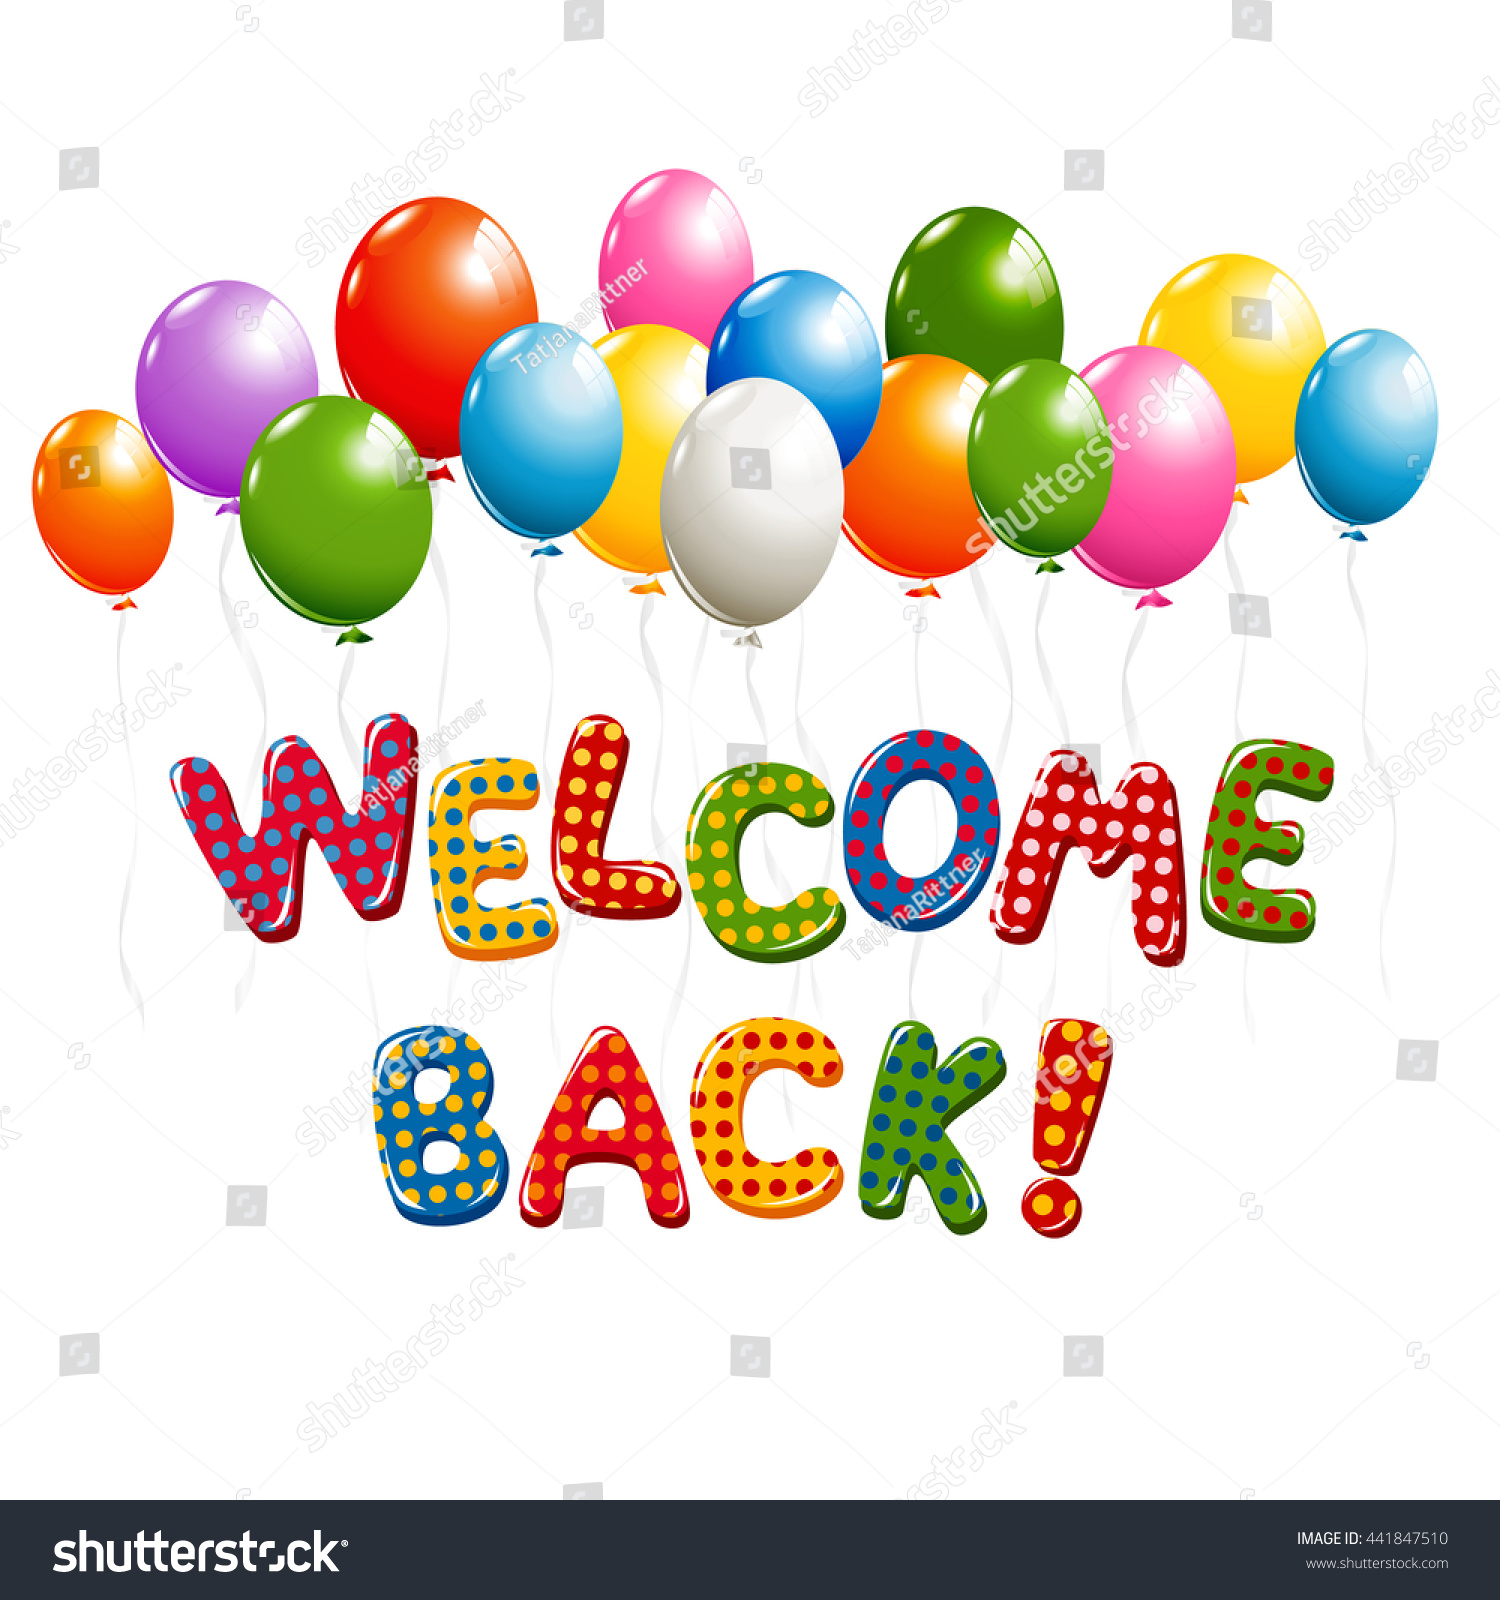 Welcome Back Text Colorful Polka Dot Stock Illustration 441847510 Shutterstock